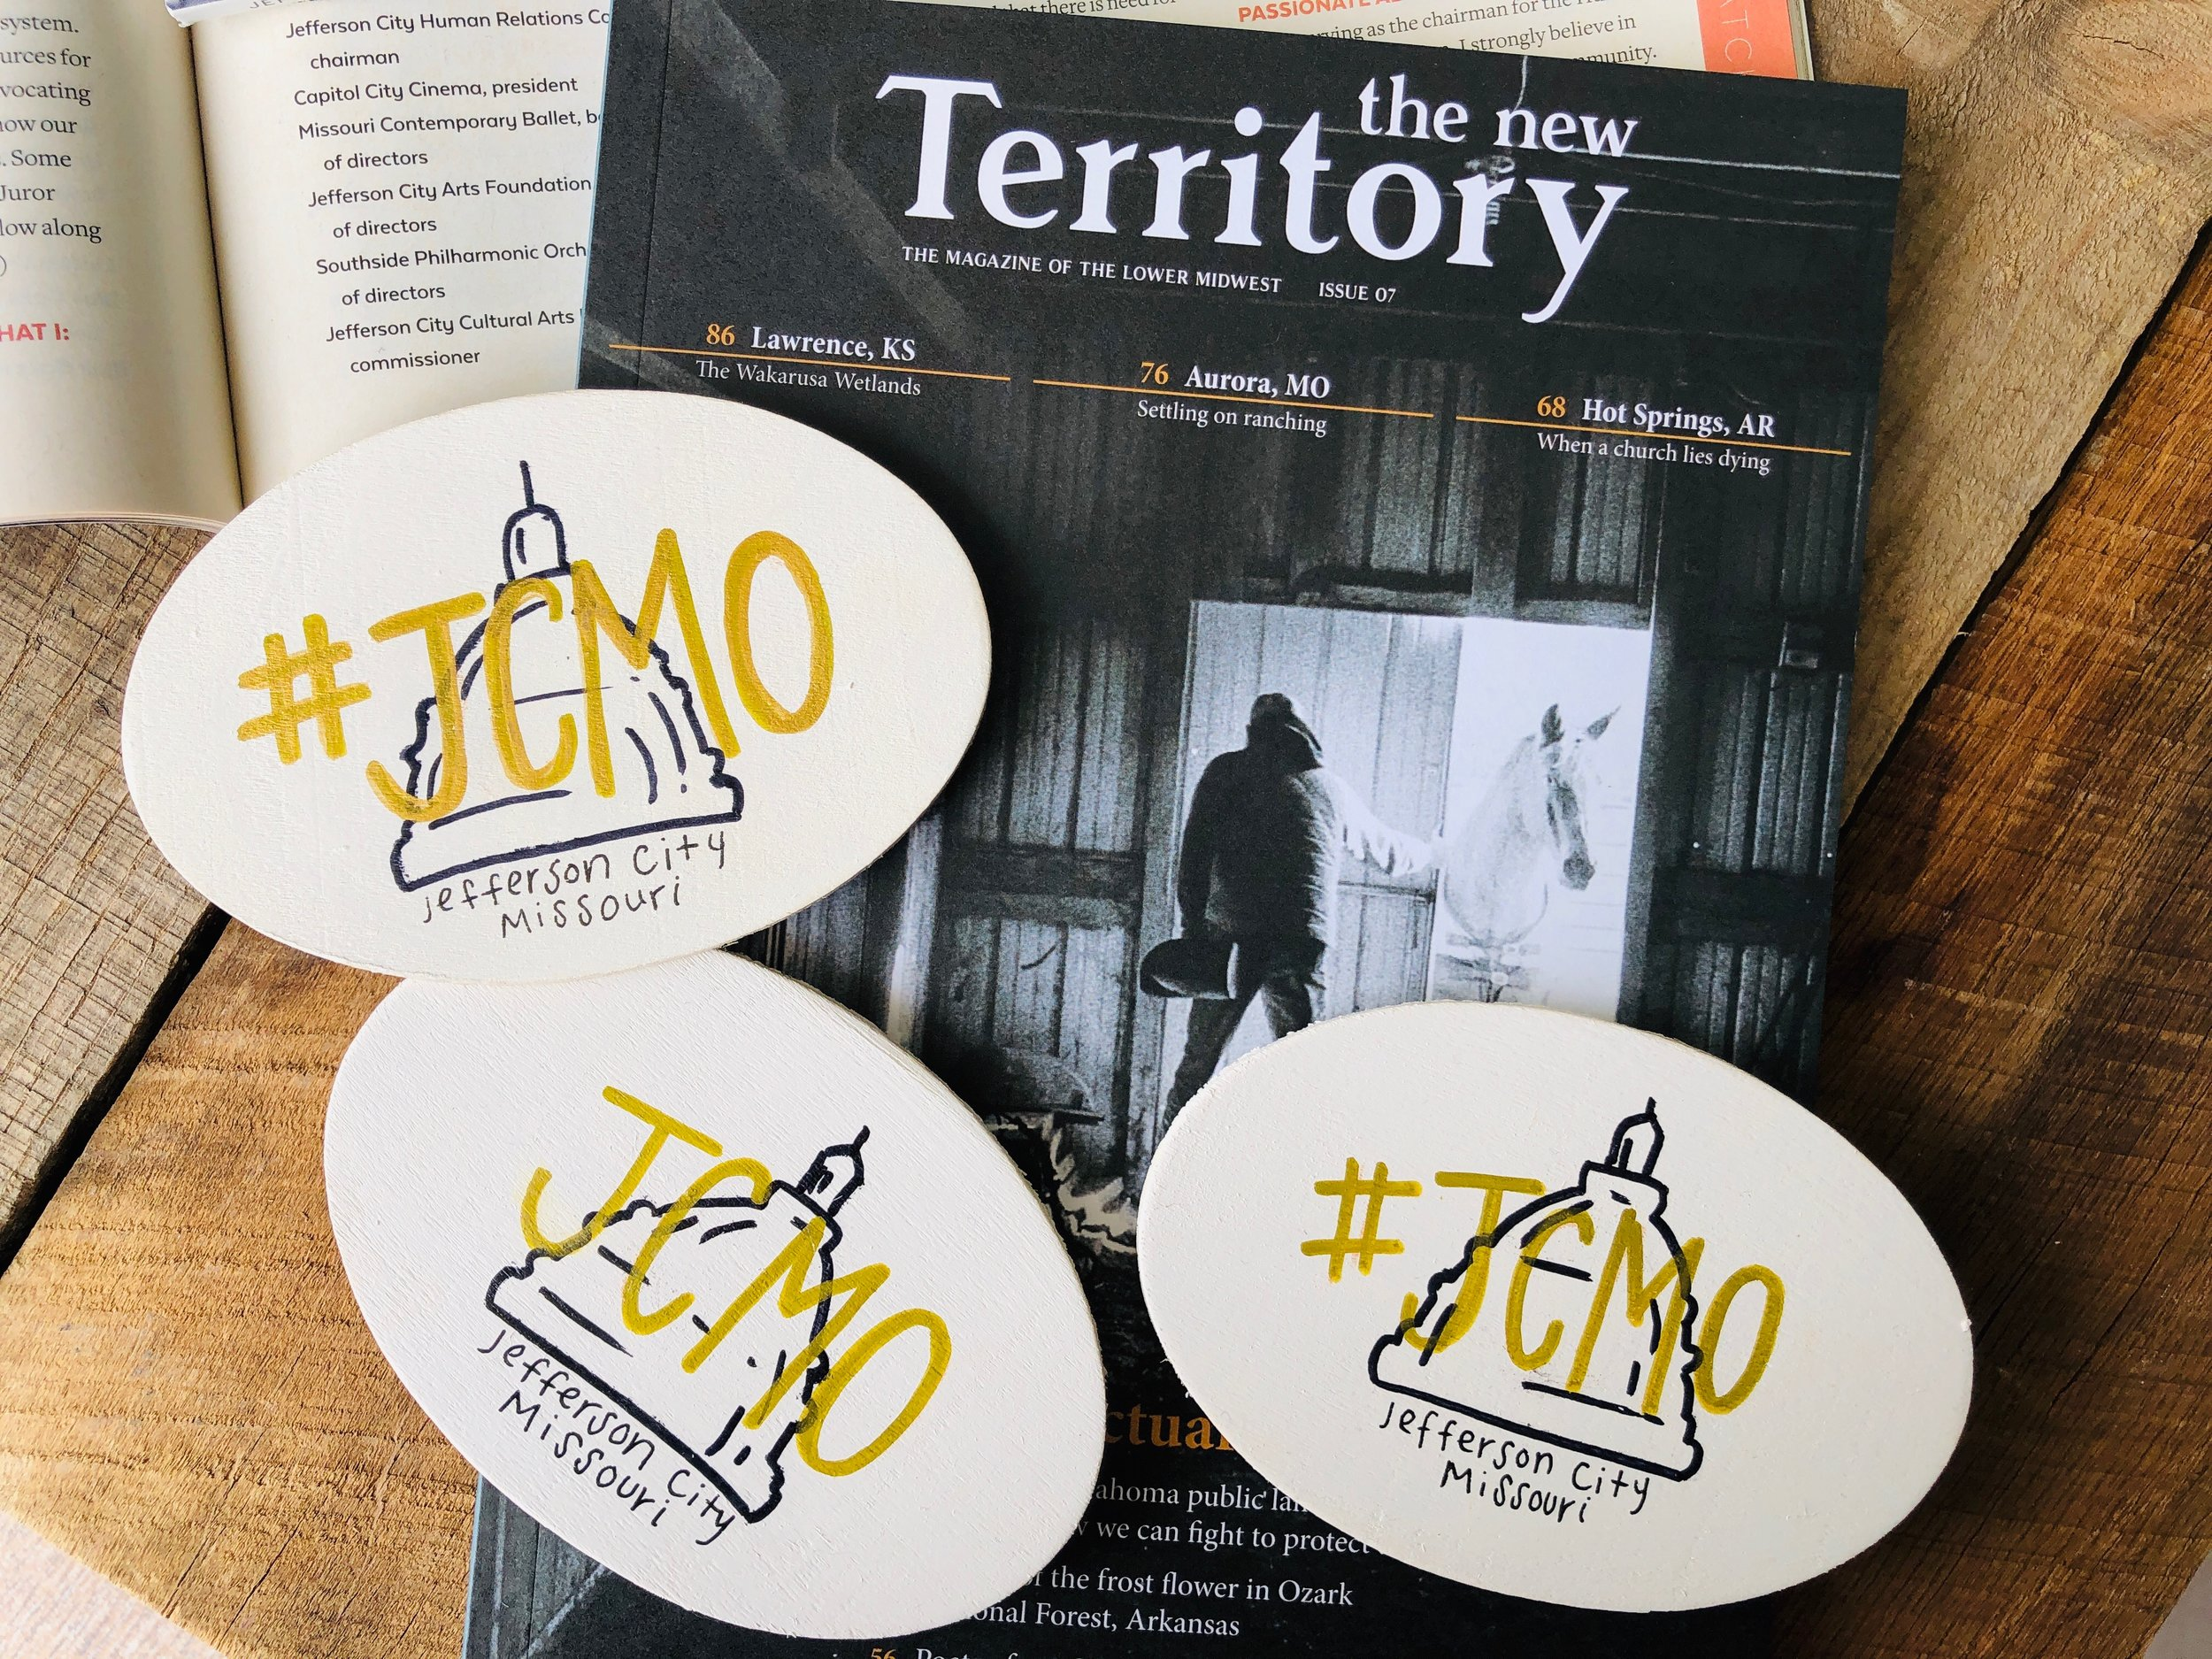 Magpie MO Designs JCMO Magnets & New Territory Magazine